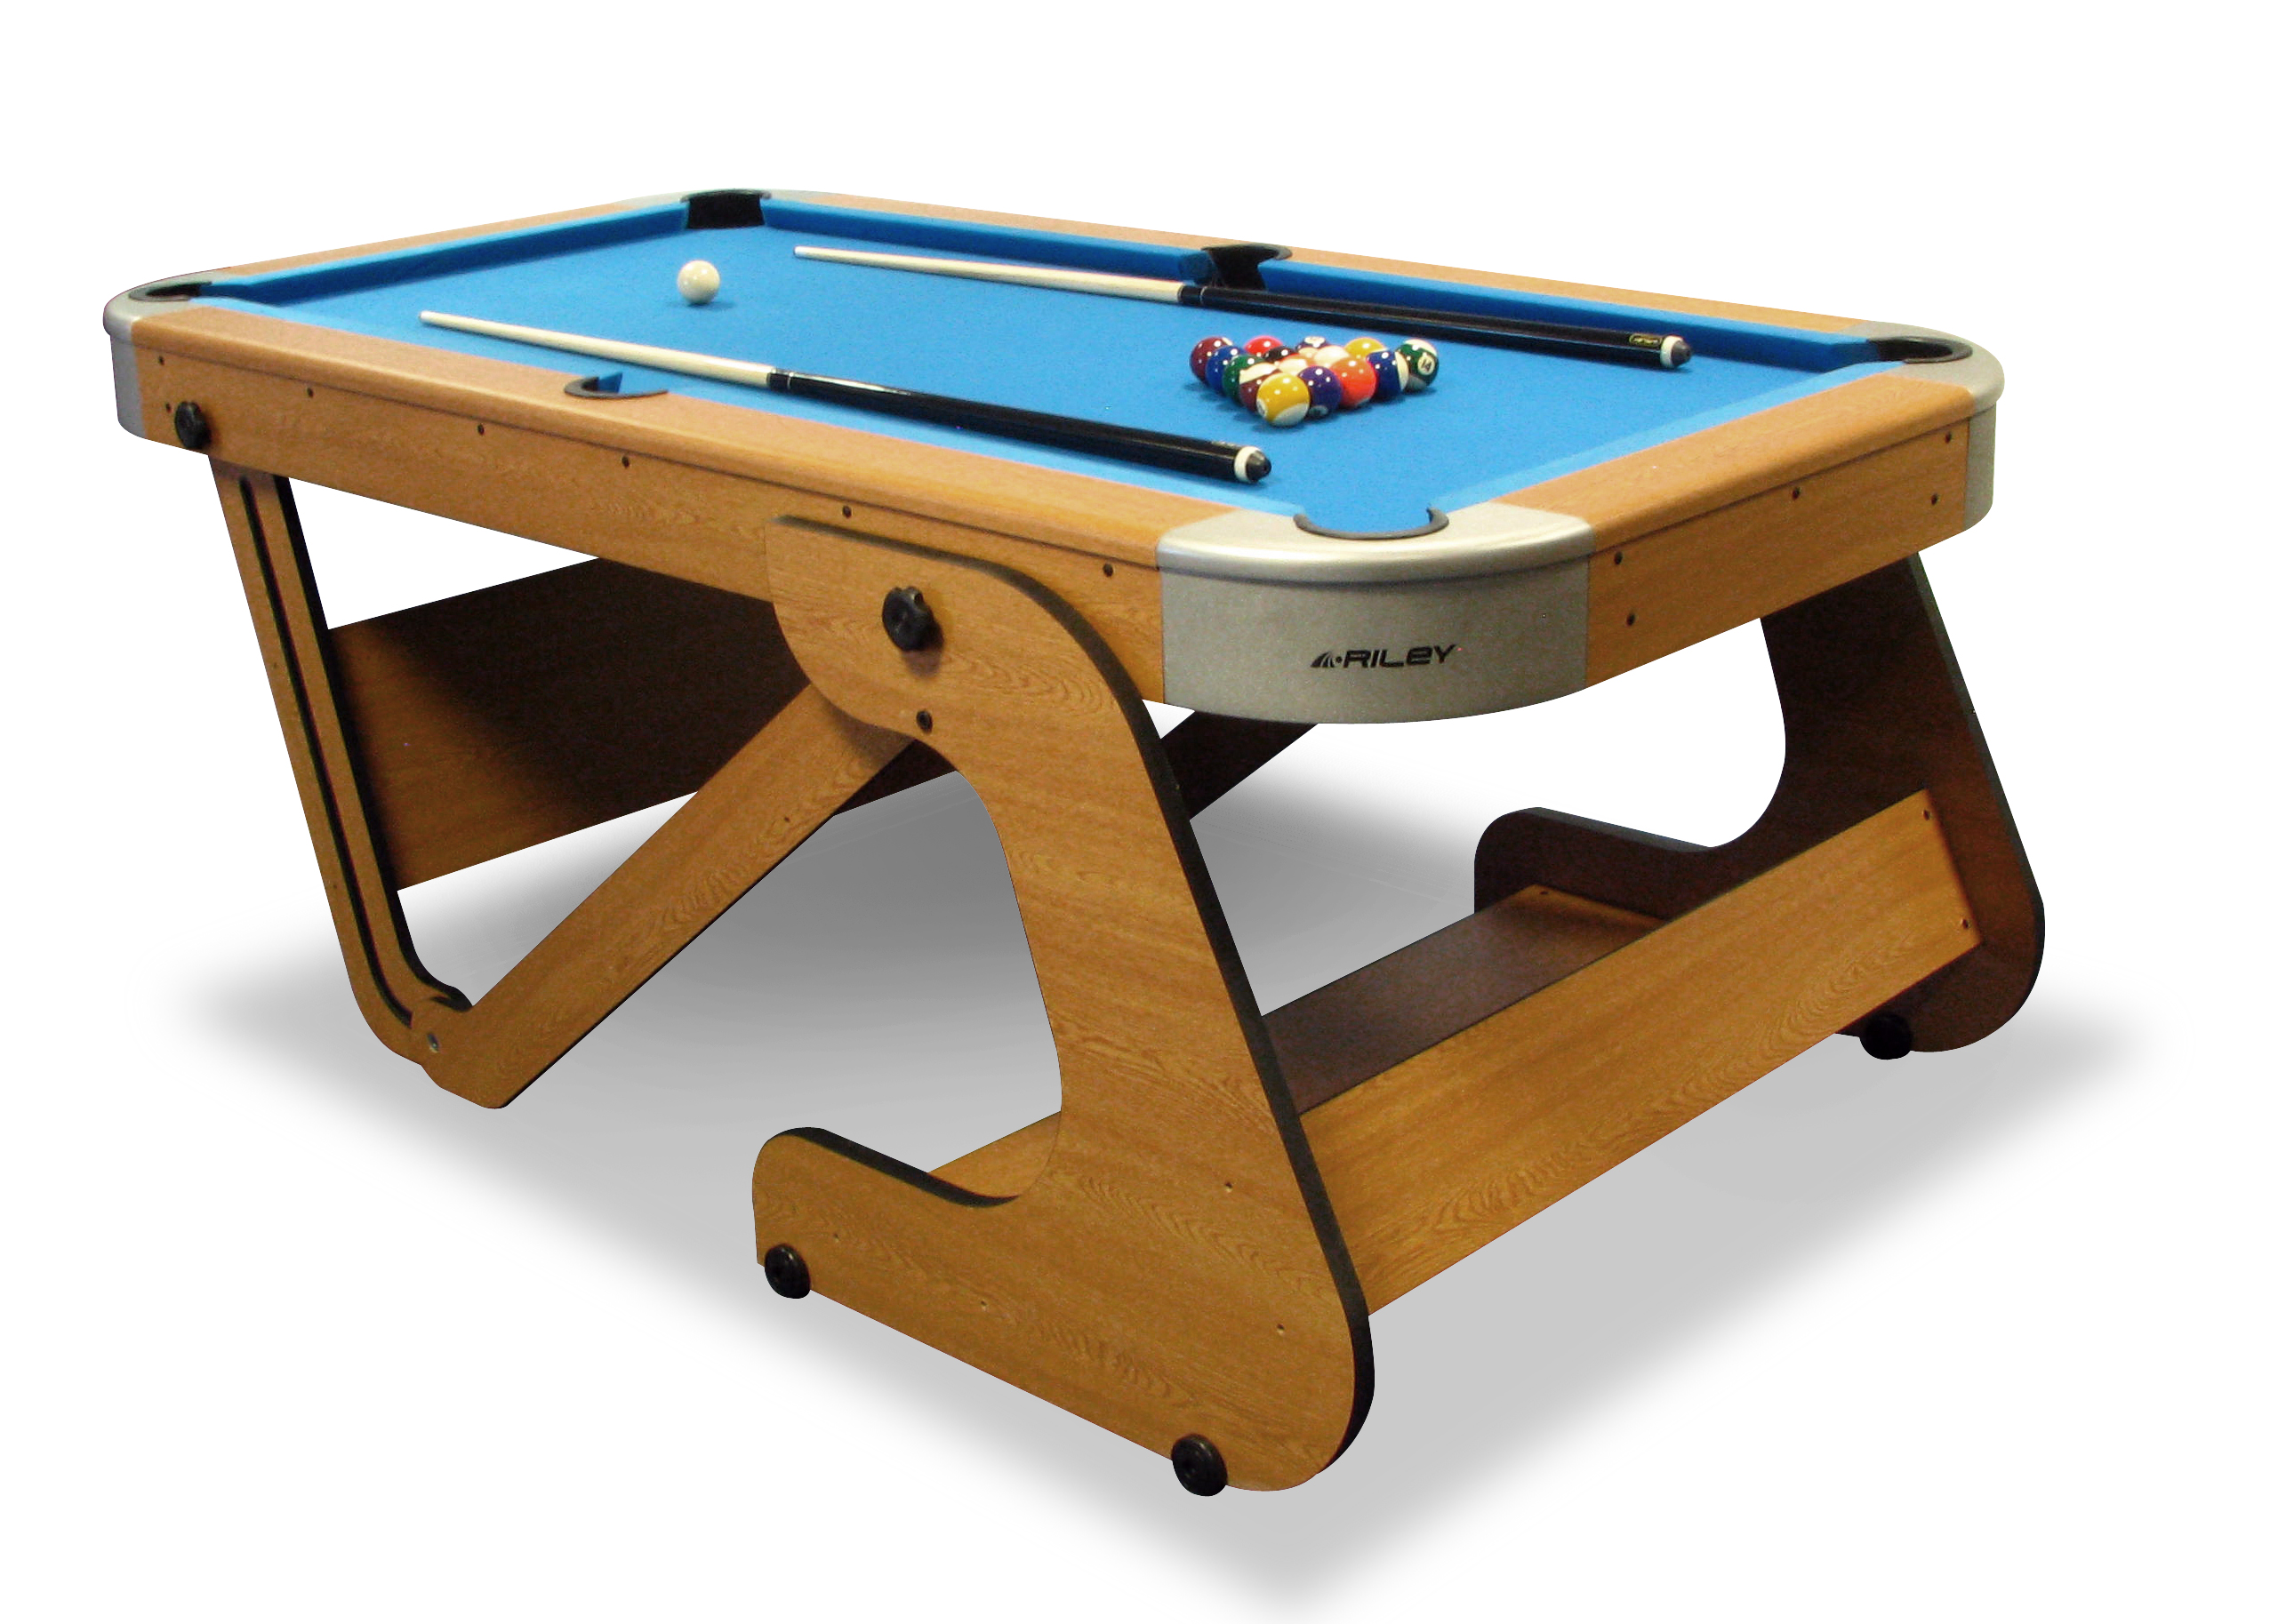 bank sport wayfair shot pool top playcraft pdx furniture accessories table reviews